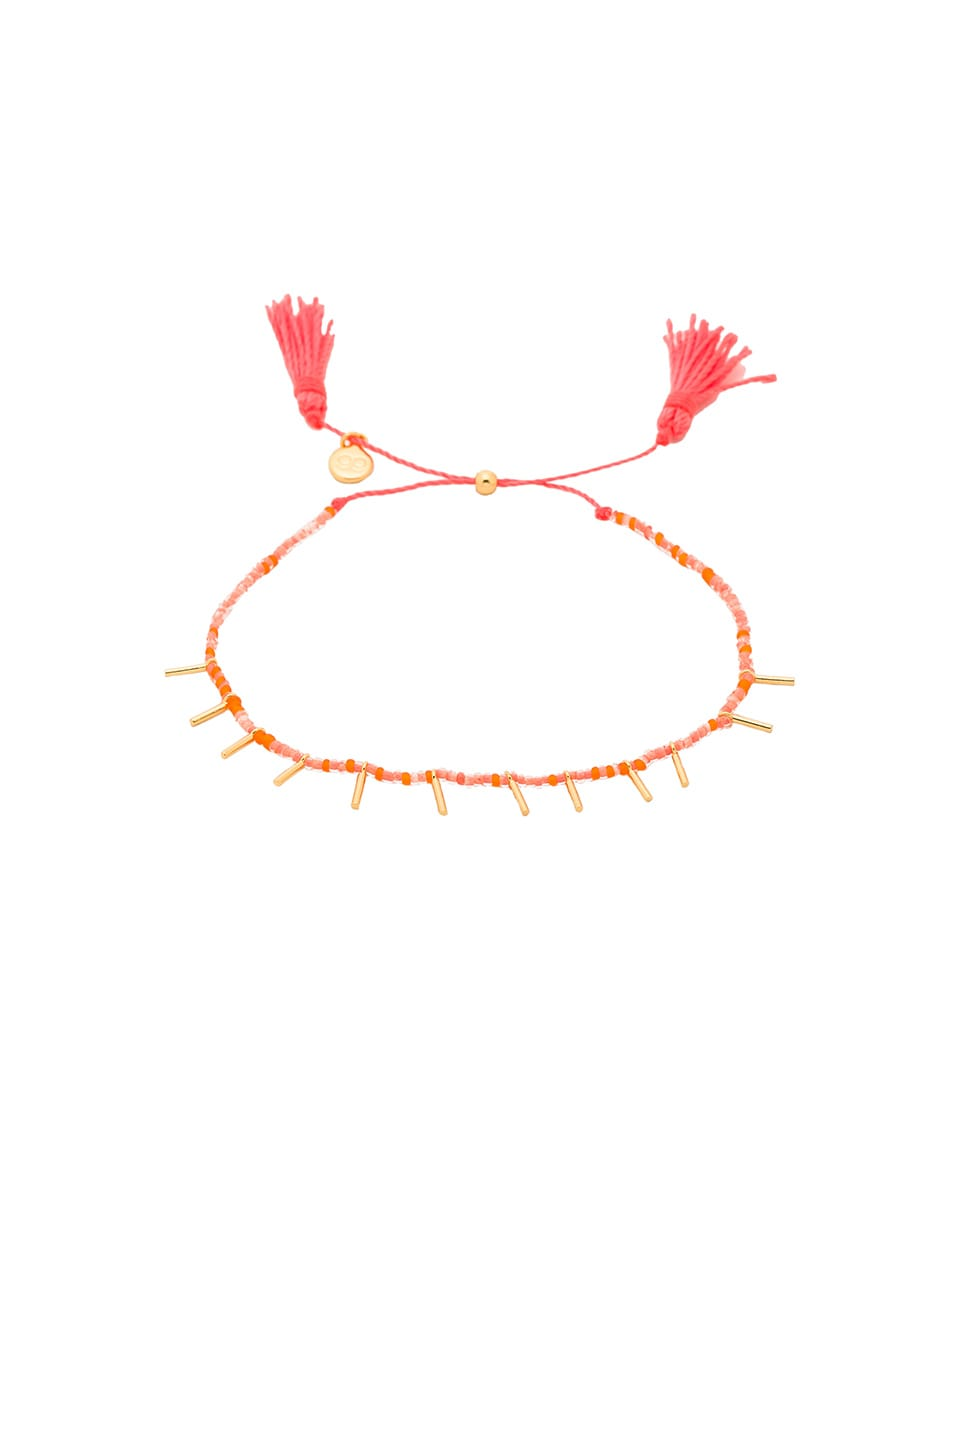 gorjana Marmont Beaded Bracelet in Gold & Coral